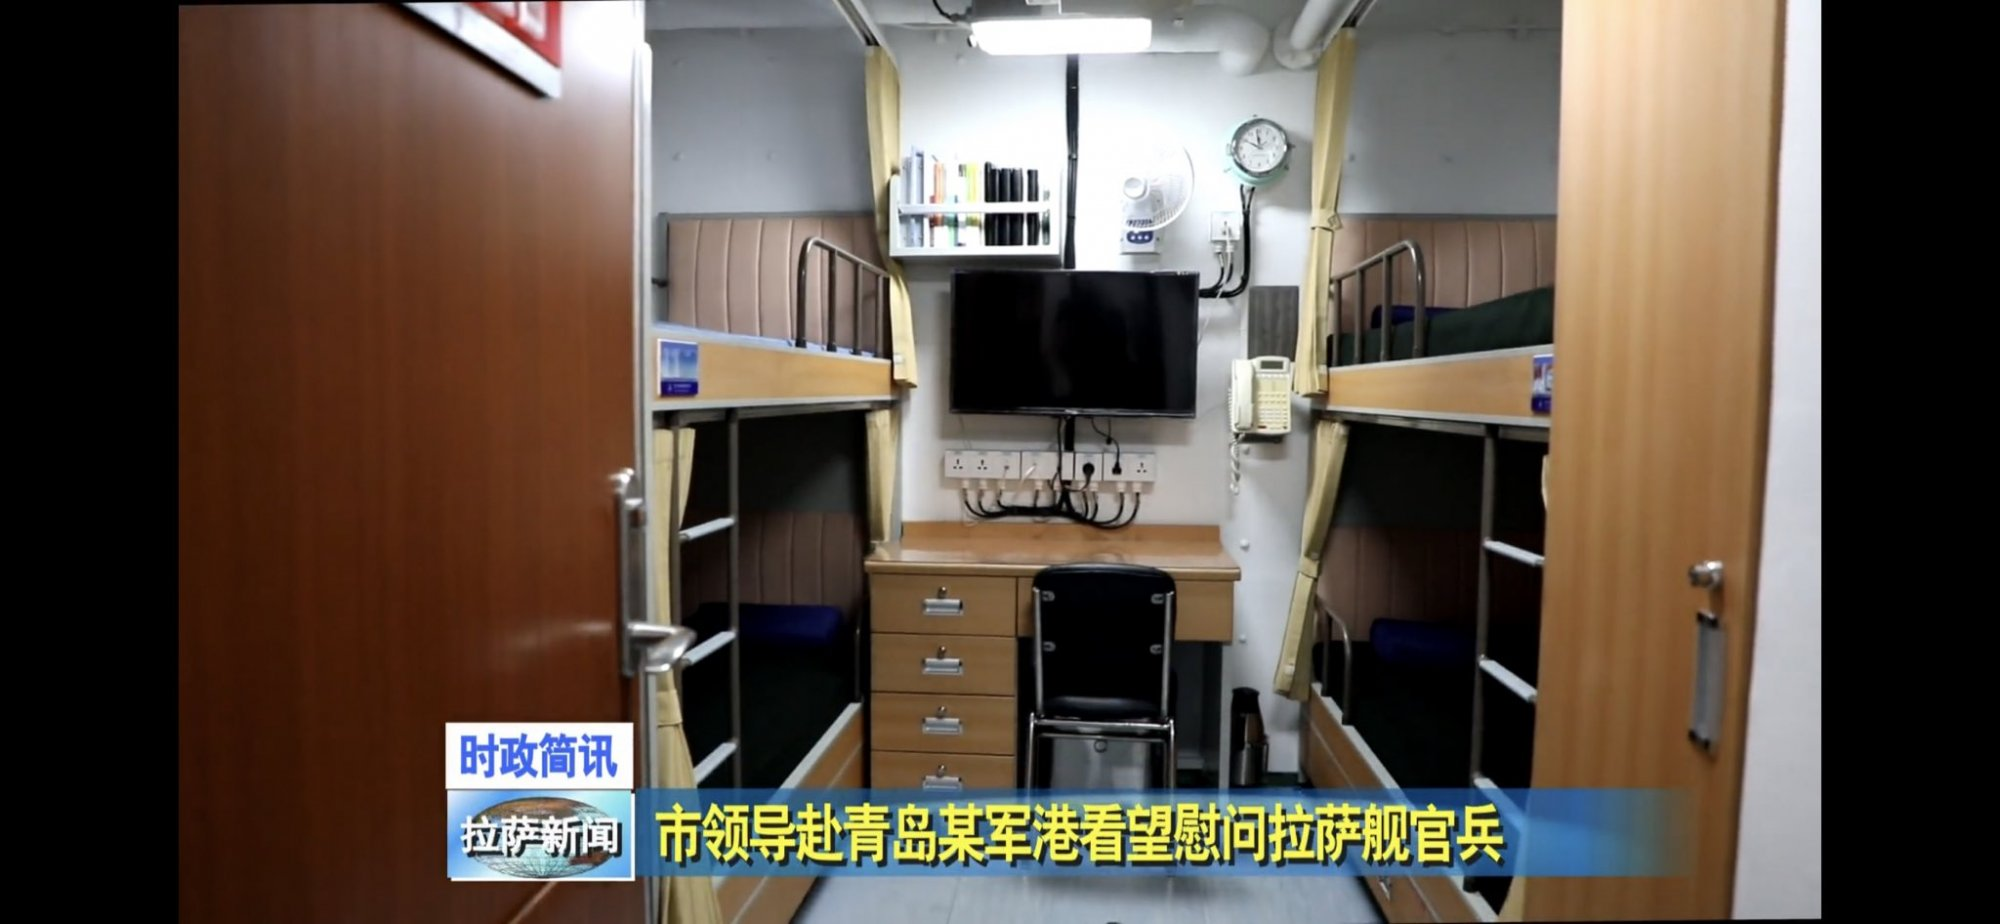 interior cabin pictures of Type 055 #102 Lhasa 07.jpg